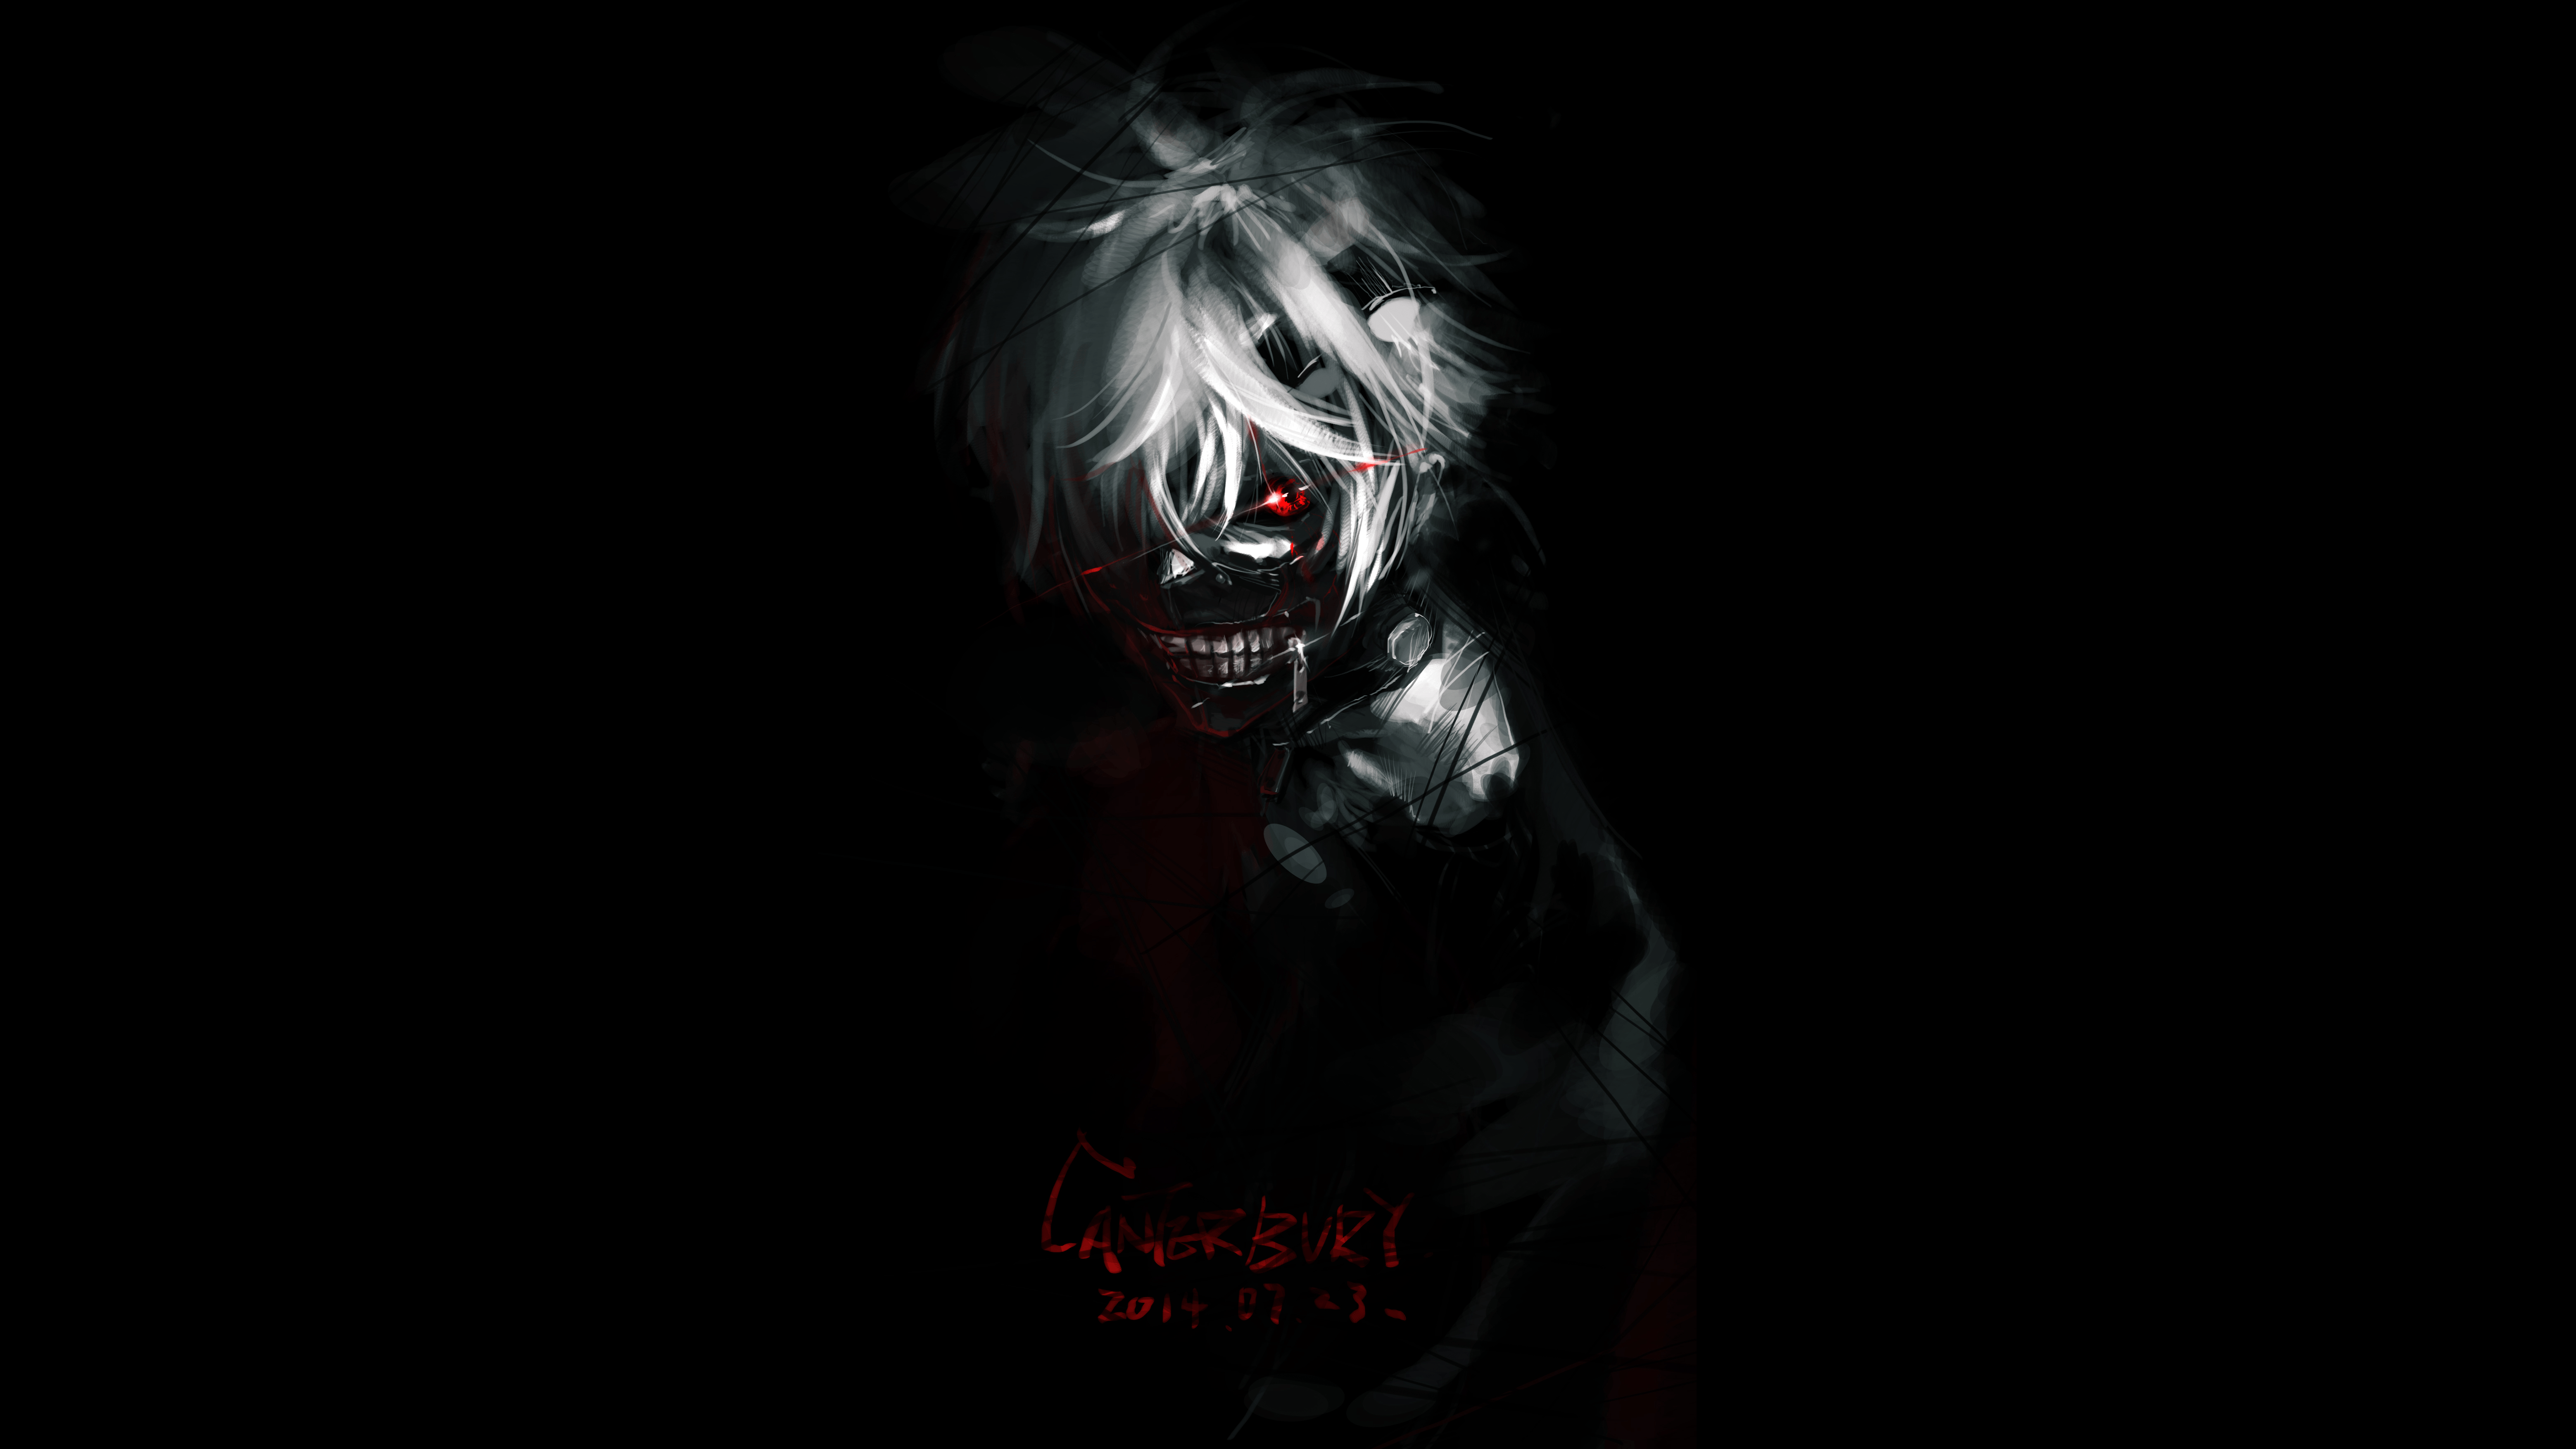 6236x3508 42 4k Ultra Hd Tokyo Ghoul Wallpapers Background Images Tokyo Ghoul Wallpapers Iphone Wallpaper Tokyo Ghoul Hd Anime Wallpapers